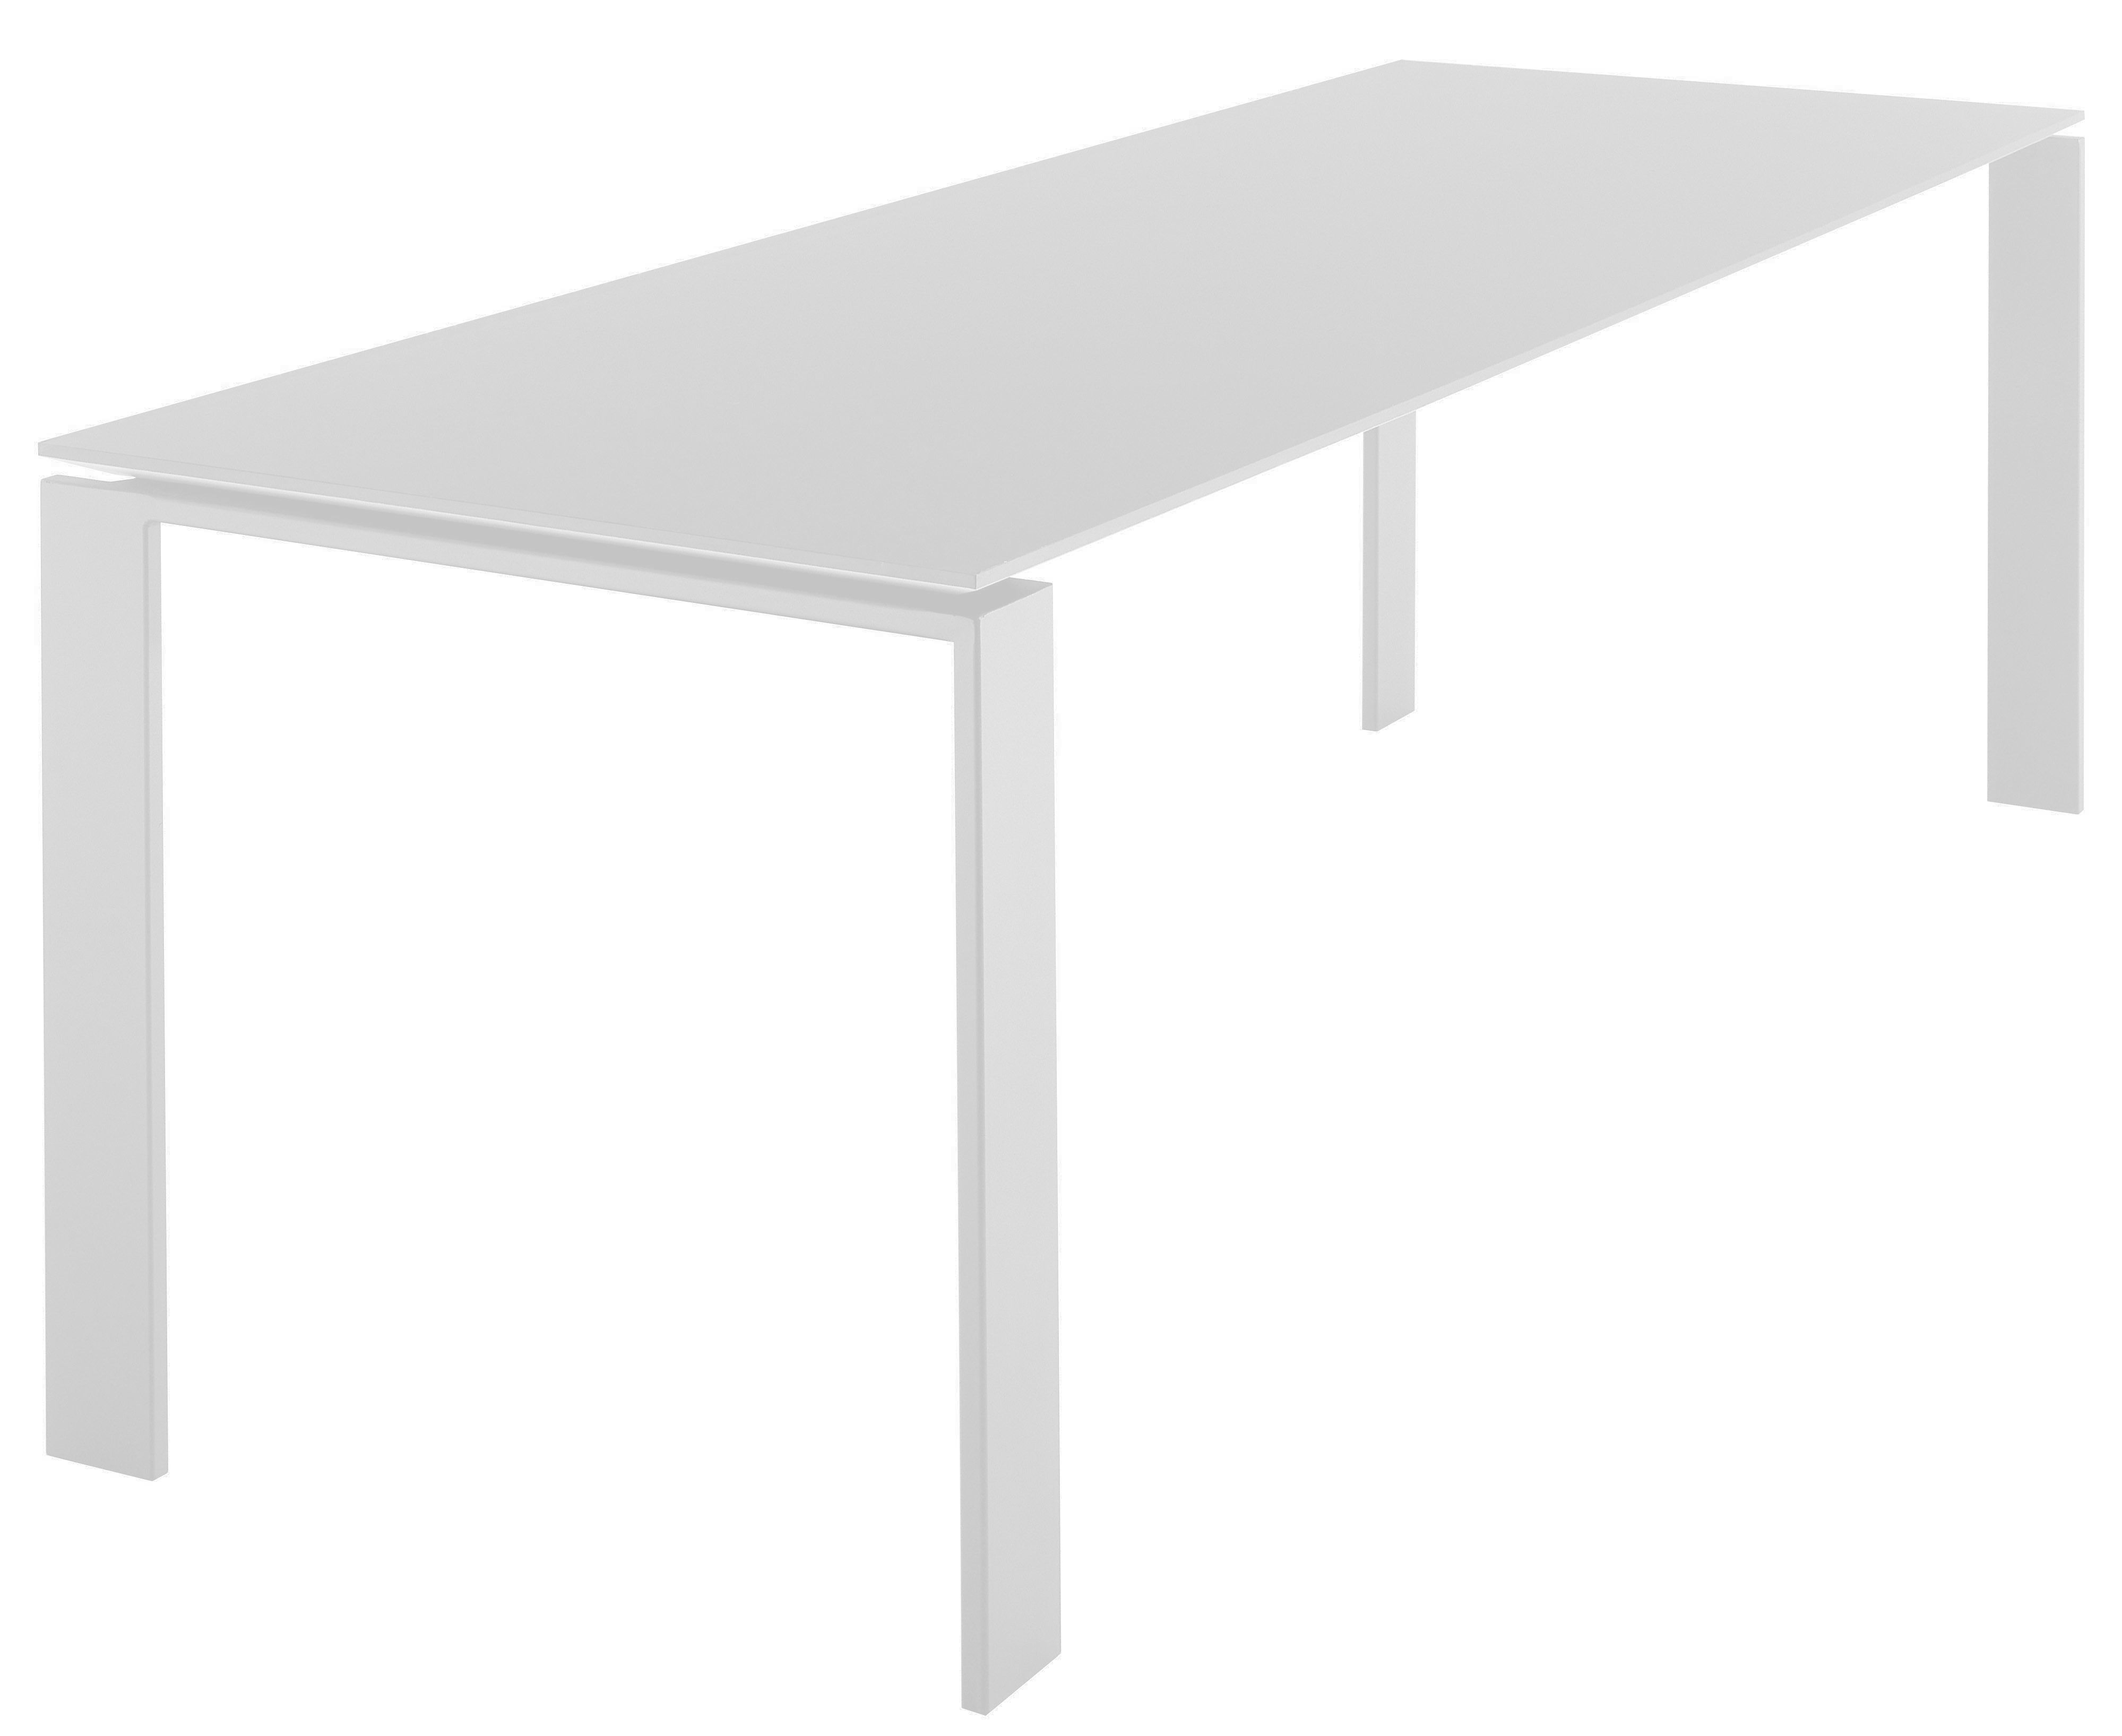 Furniture - Dining Tables - Four Rectangular table - White - L 158 cm by Kartell - 158 cm - Laminate, Varnished steel